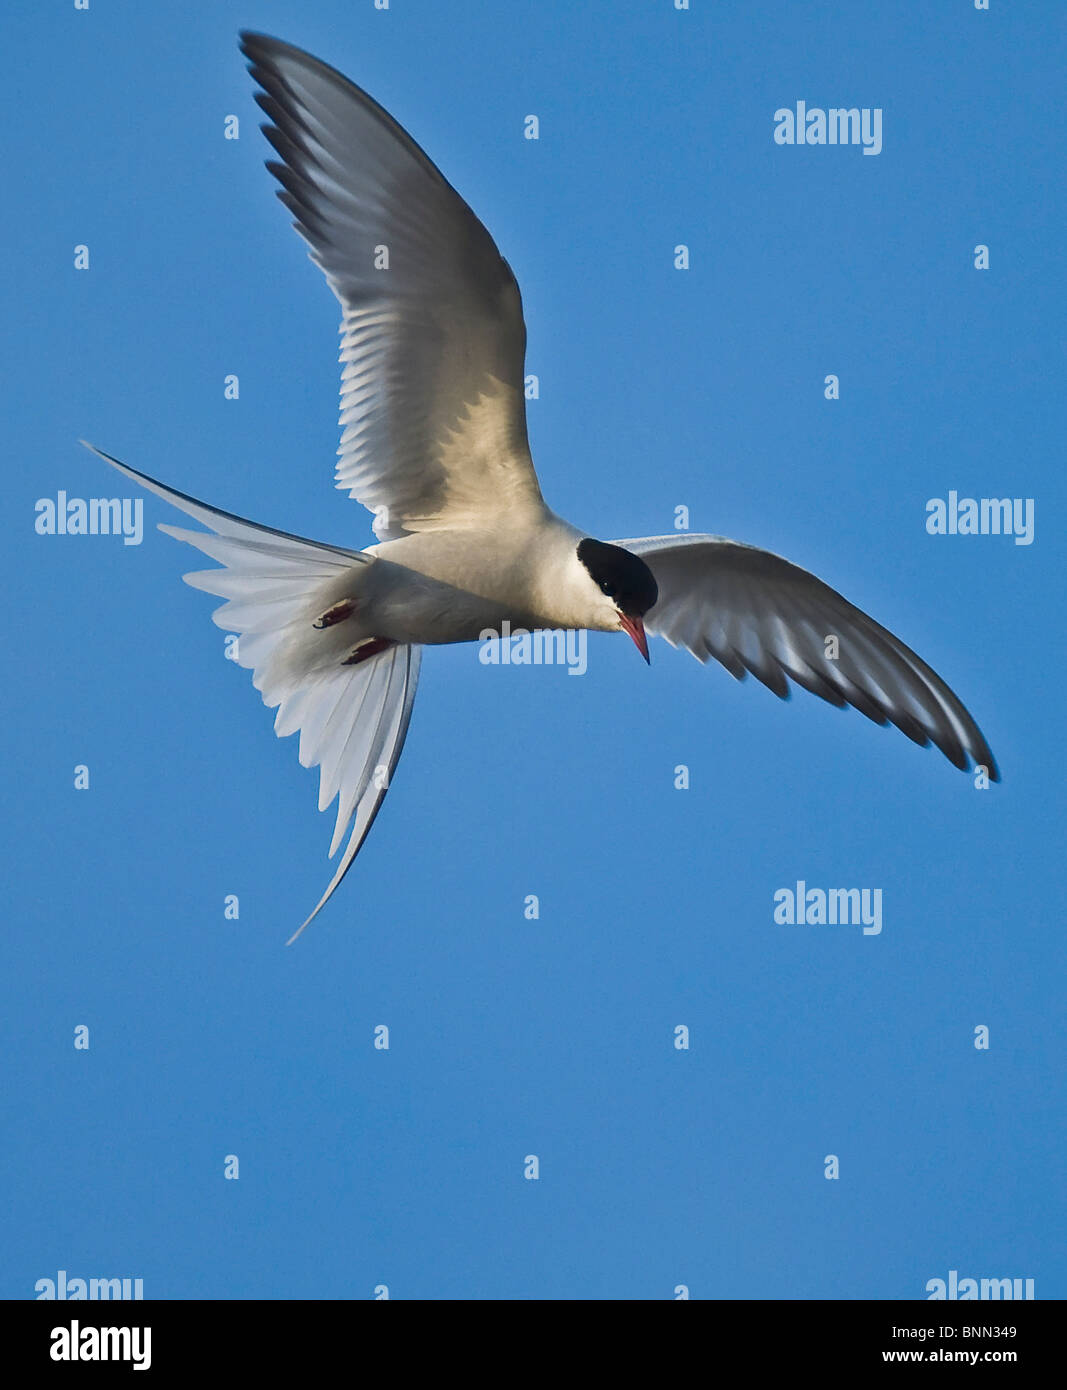 An Arctic Tern in flight as it hovers over Potter's Marsh near Anchorage in Alaska - Stock Image